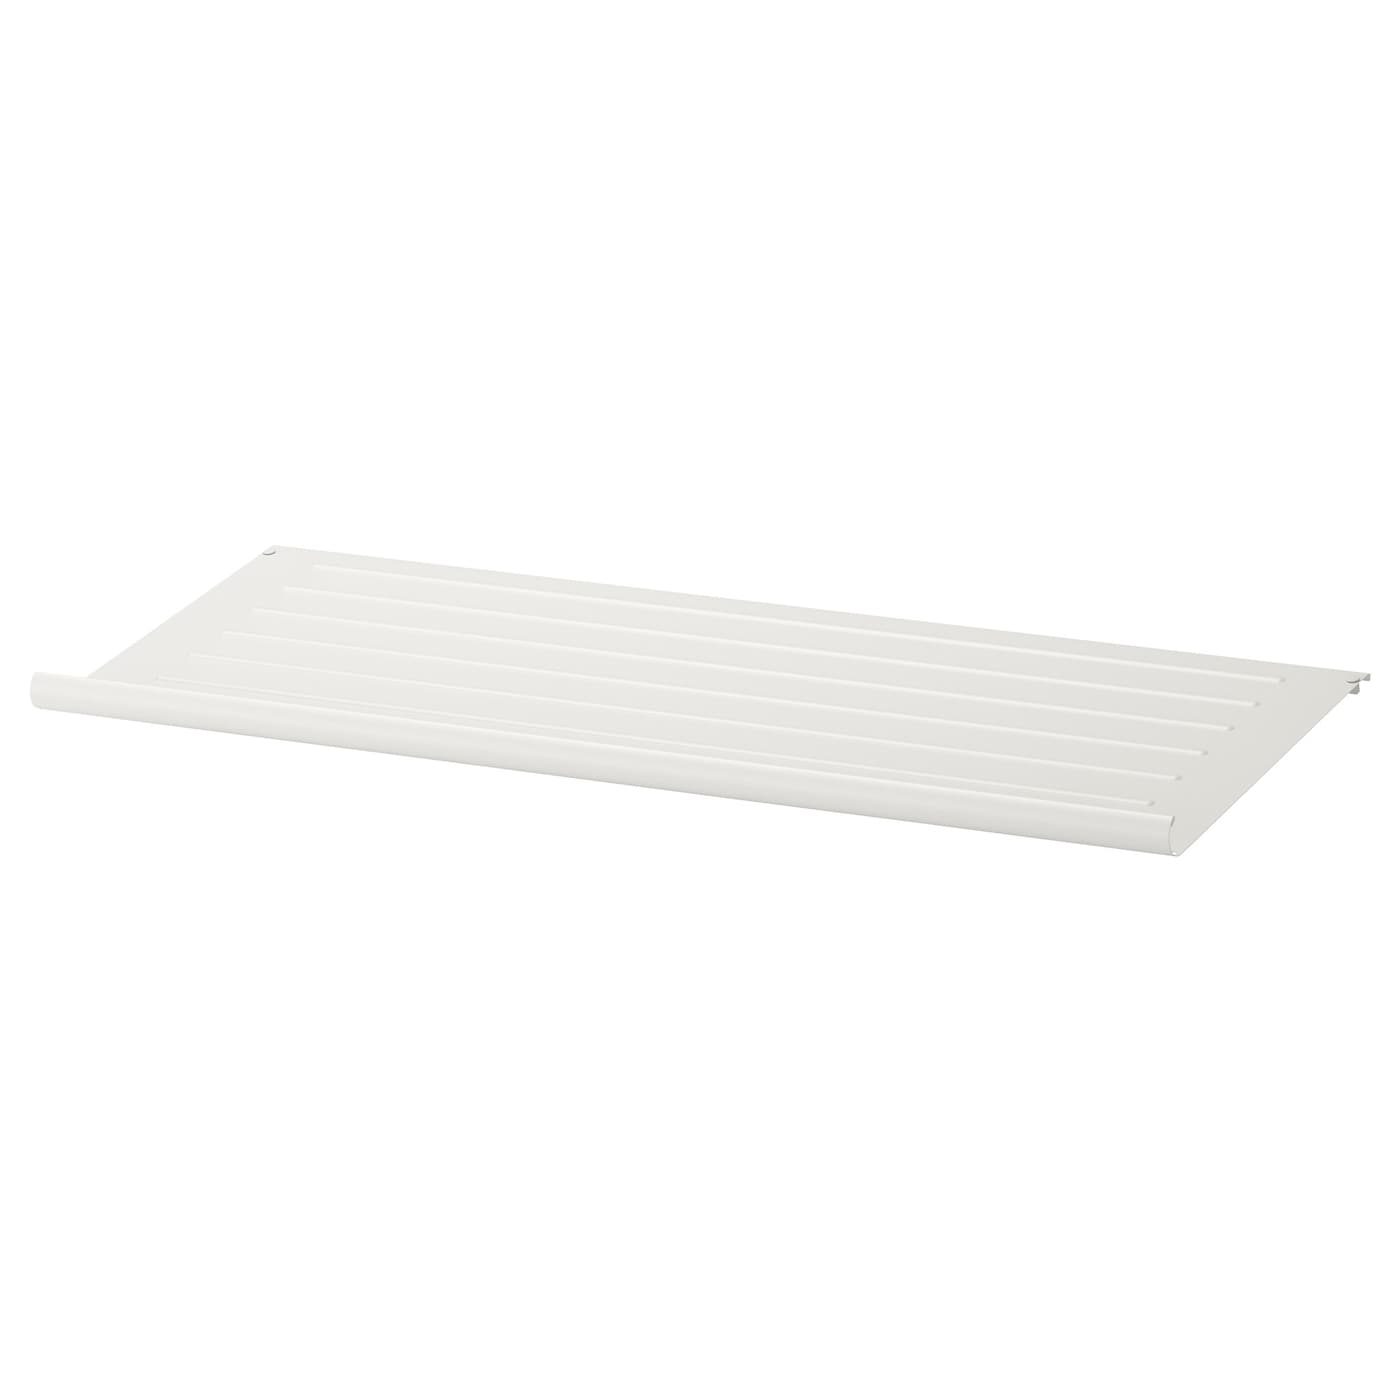 Komplement shoe shelf white 100x35 cm ikea for Ikea complementi